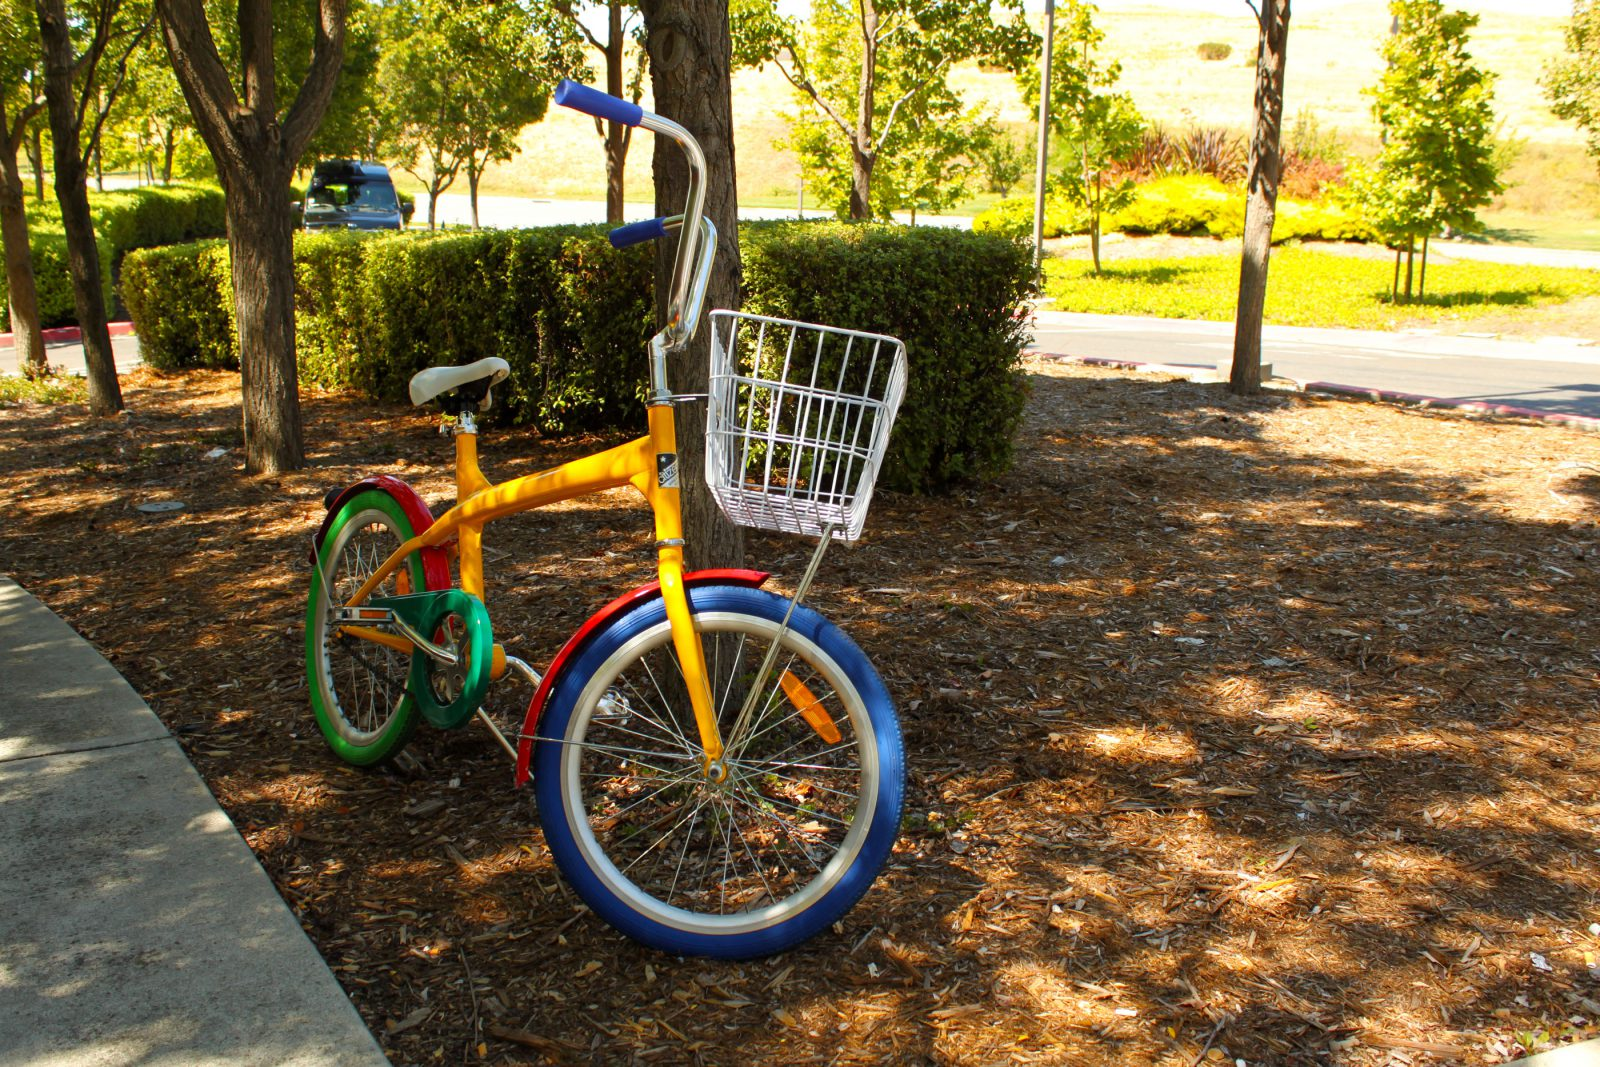 silicon valley, google, bike, studera utomlands, sfsu, san francisco state university